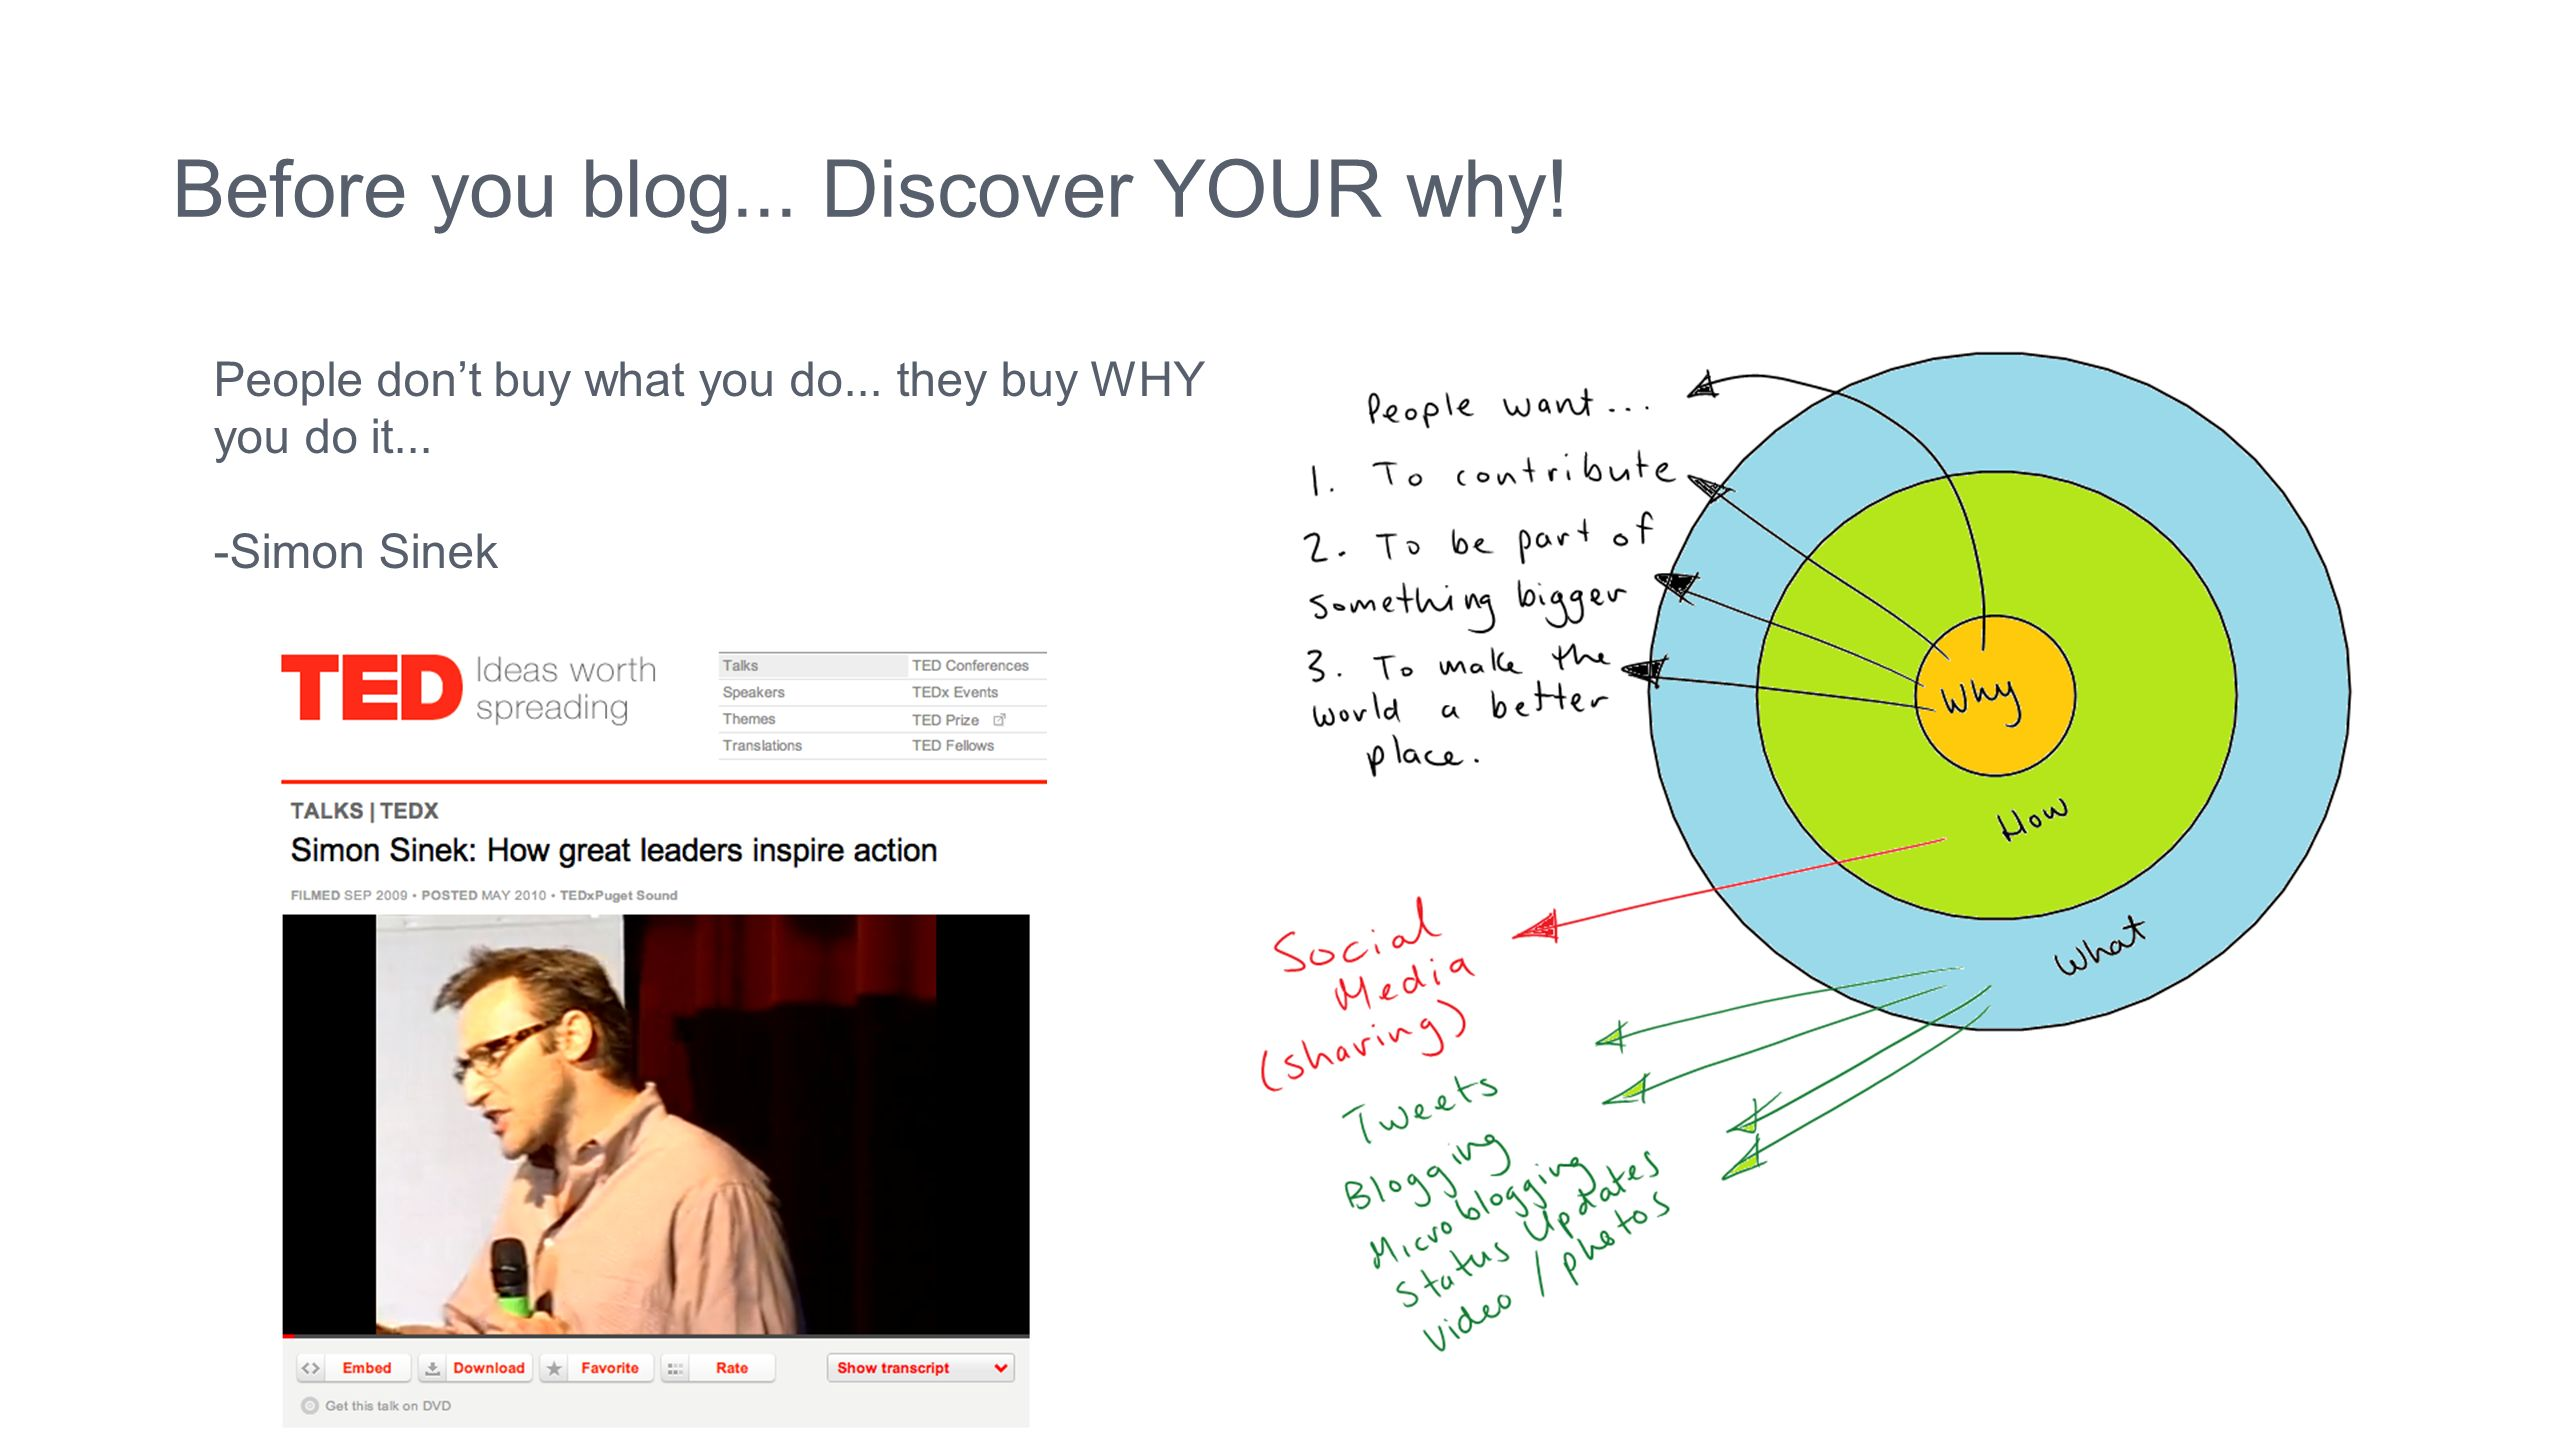 Before you blog... Discover YOUR why! People dont buy what you do... they buy WHY you do it... -Simon Sinek